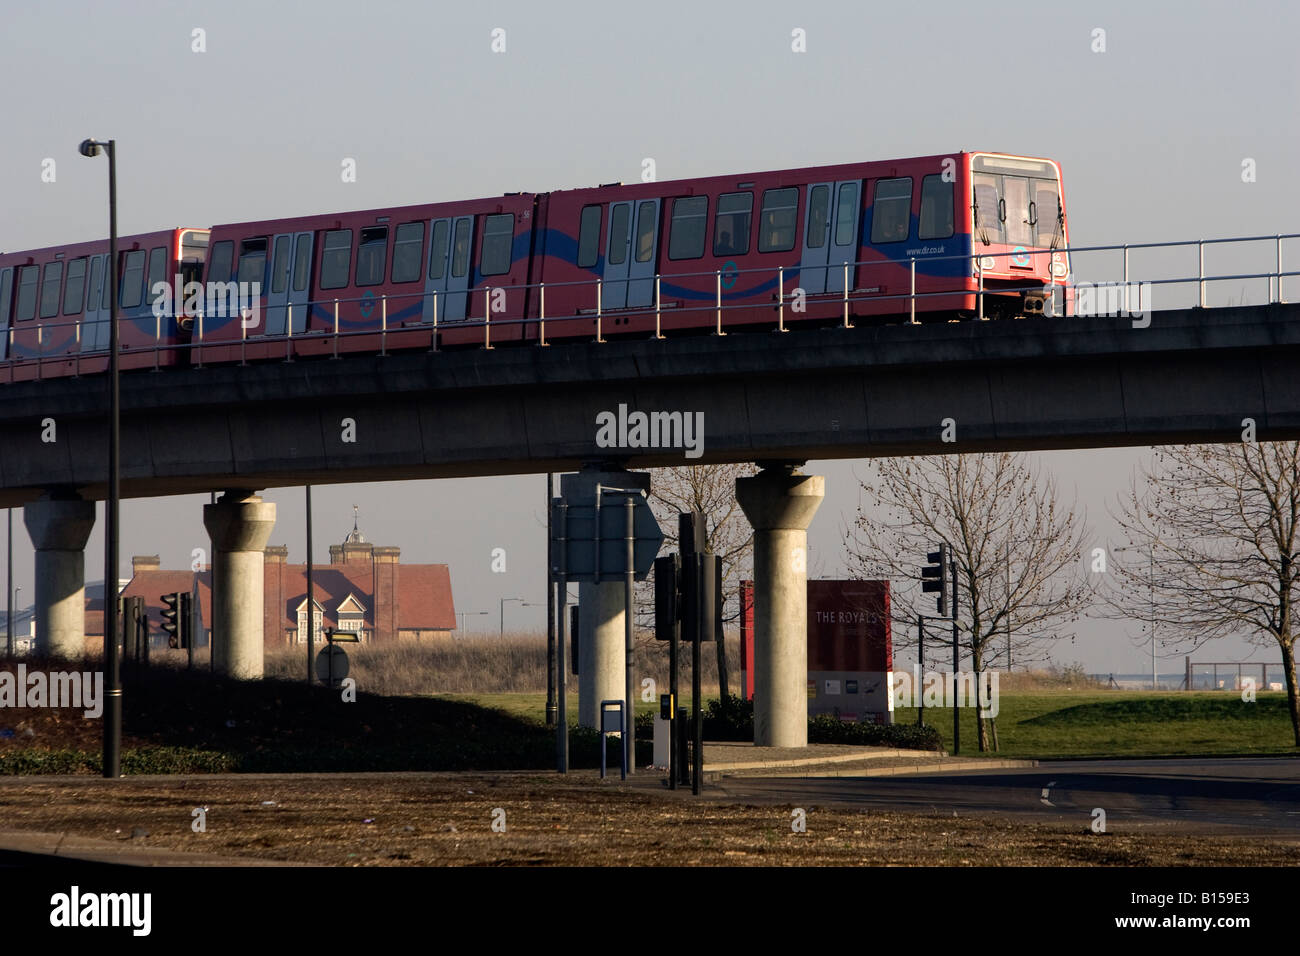 One of the trains of the Docklands Light Railway London over a bridge in the Docklands - Stock Image